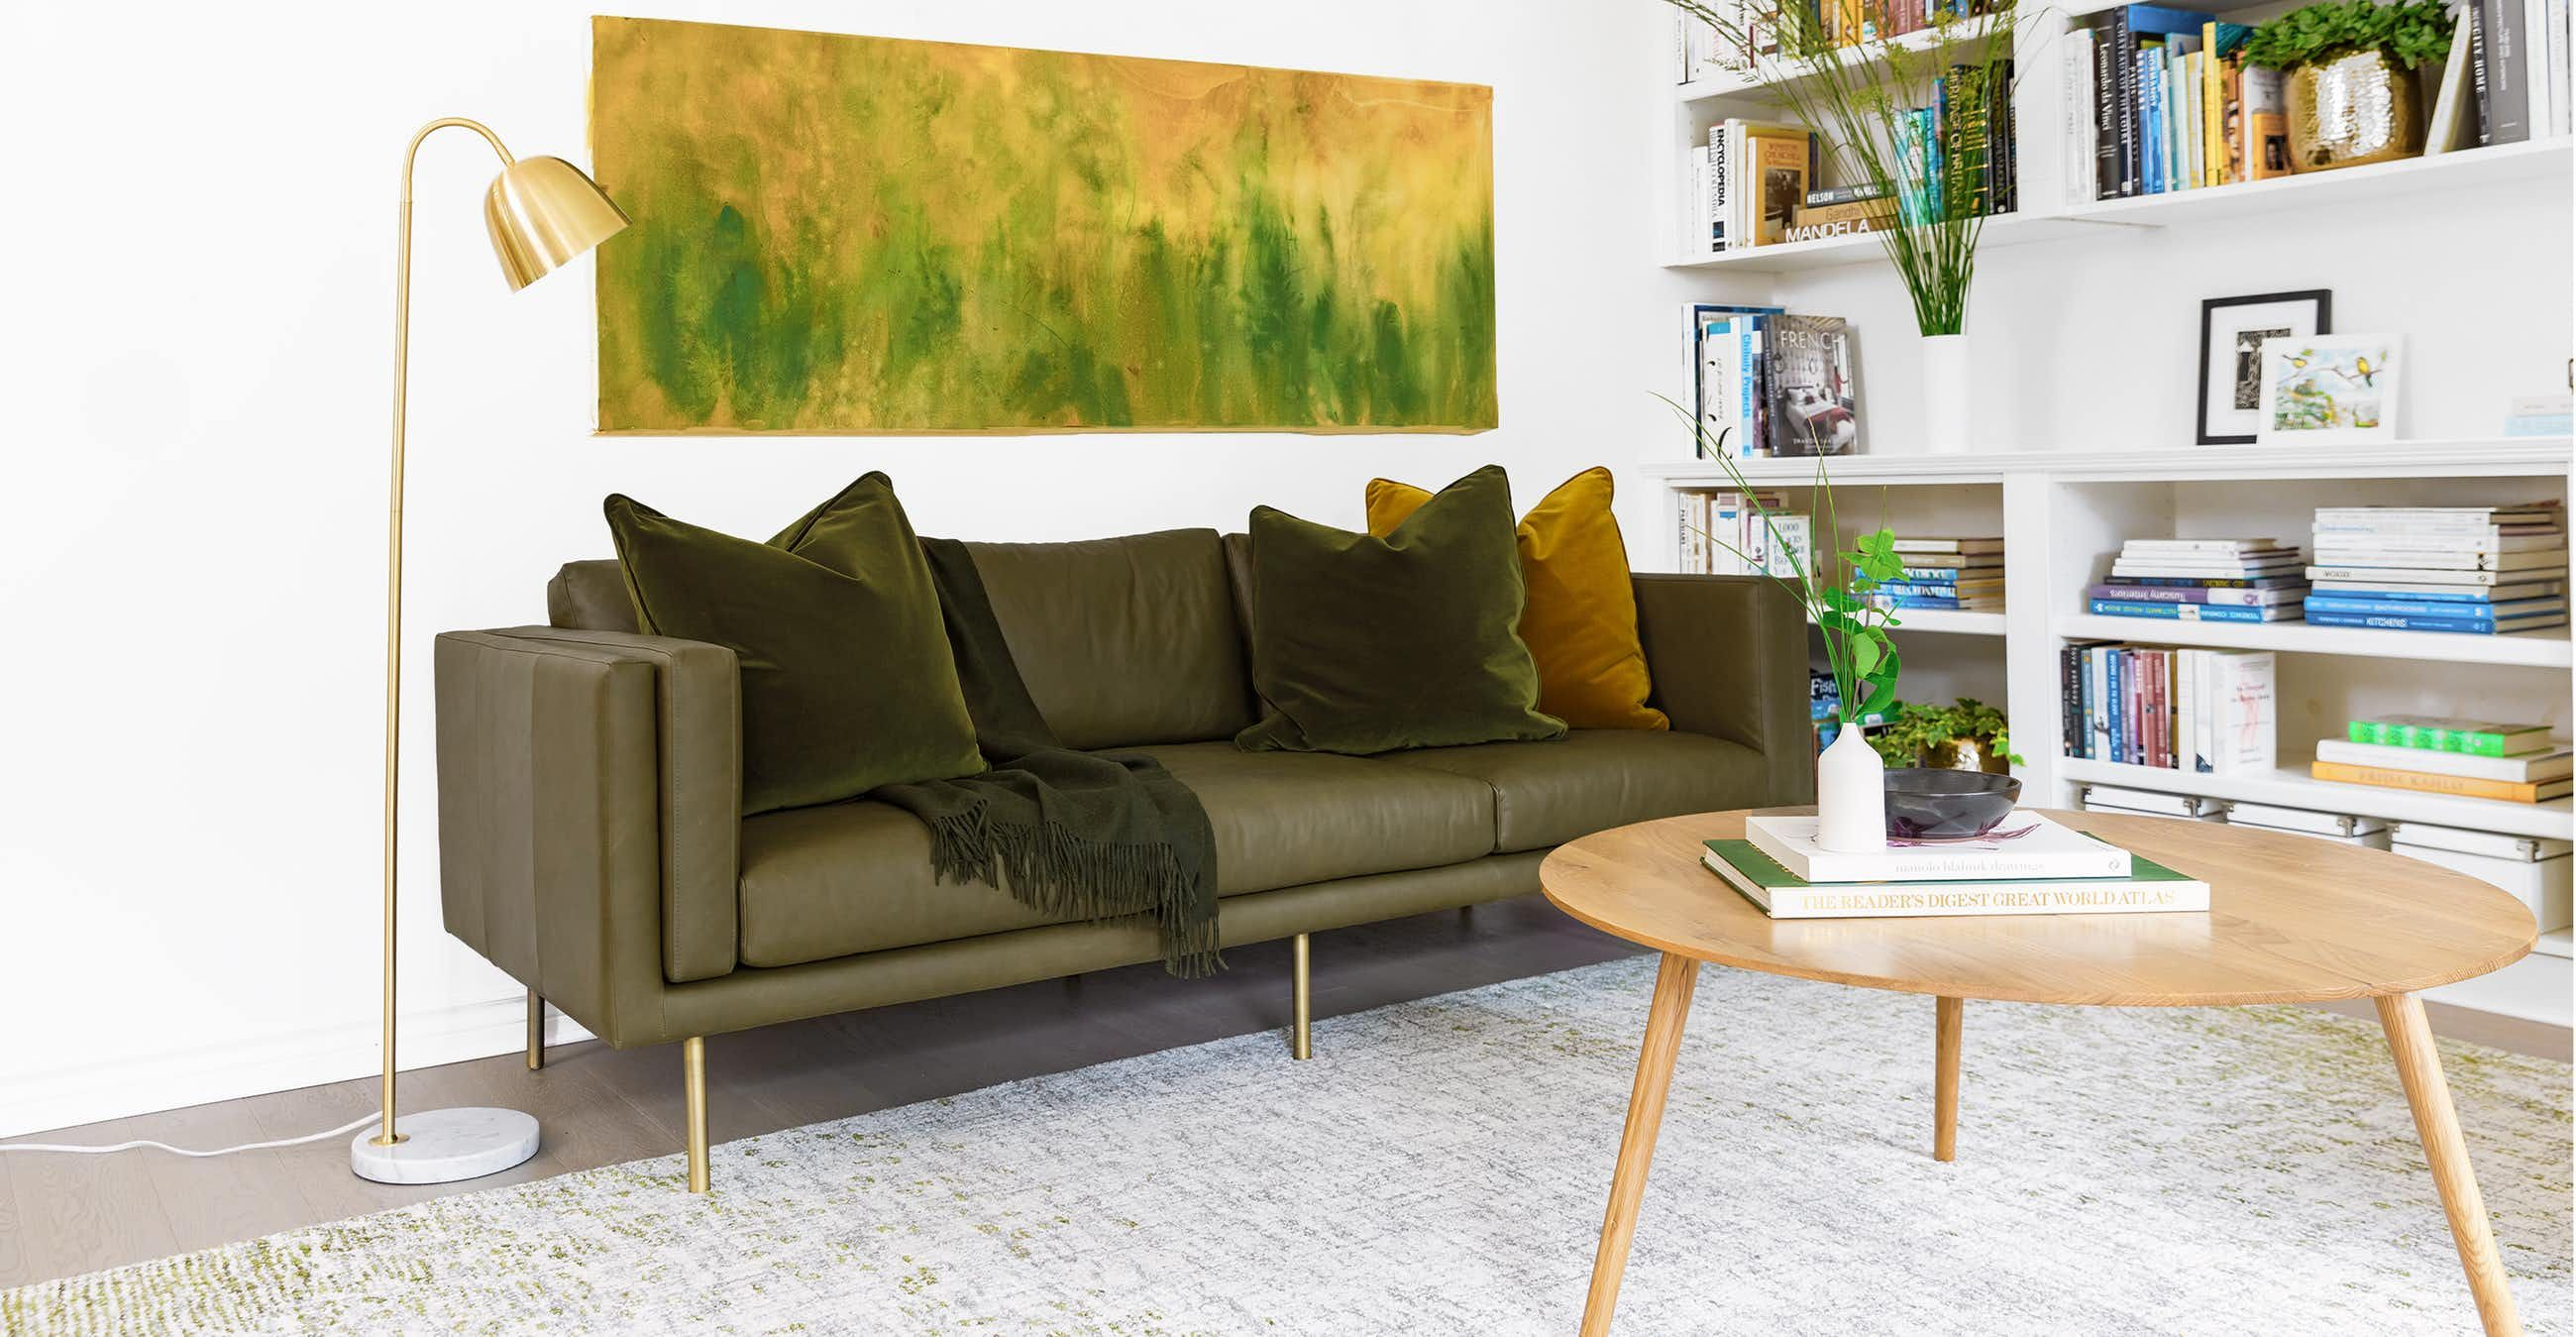 Living Room With Olive Green Couch And Loveseat